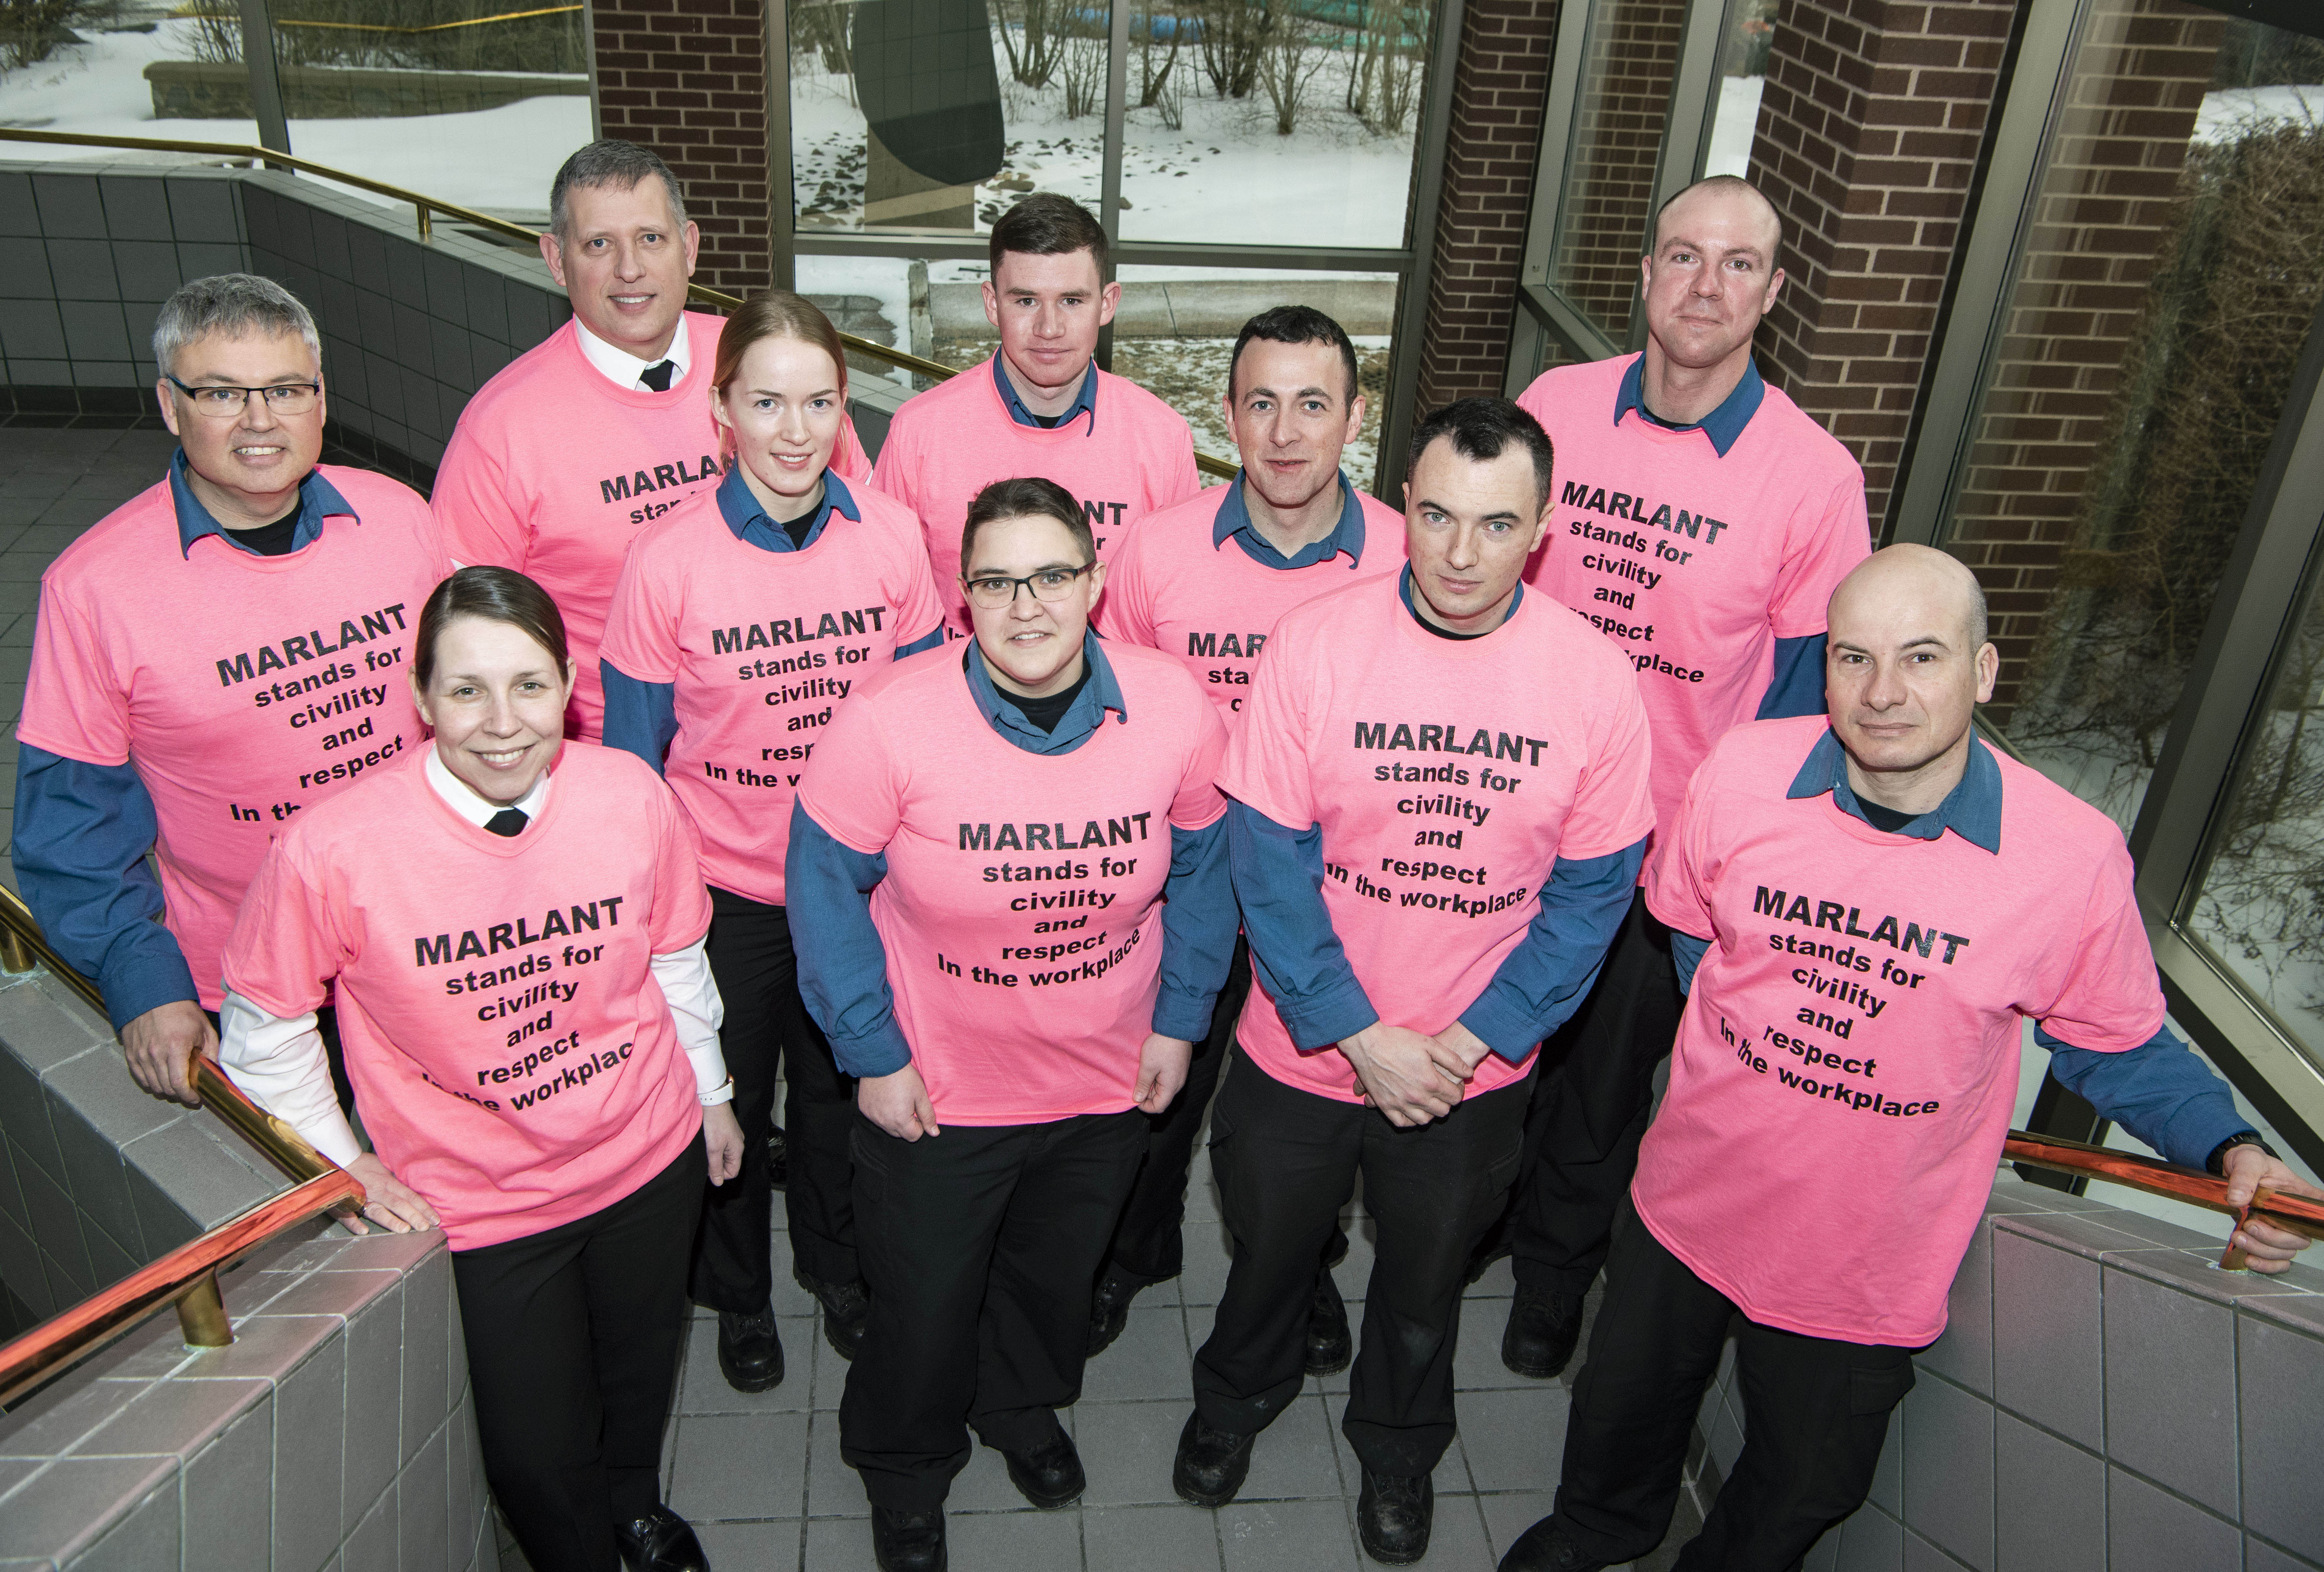 MARLANT celebrates Pink Shirt Day